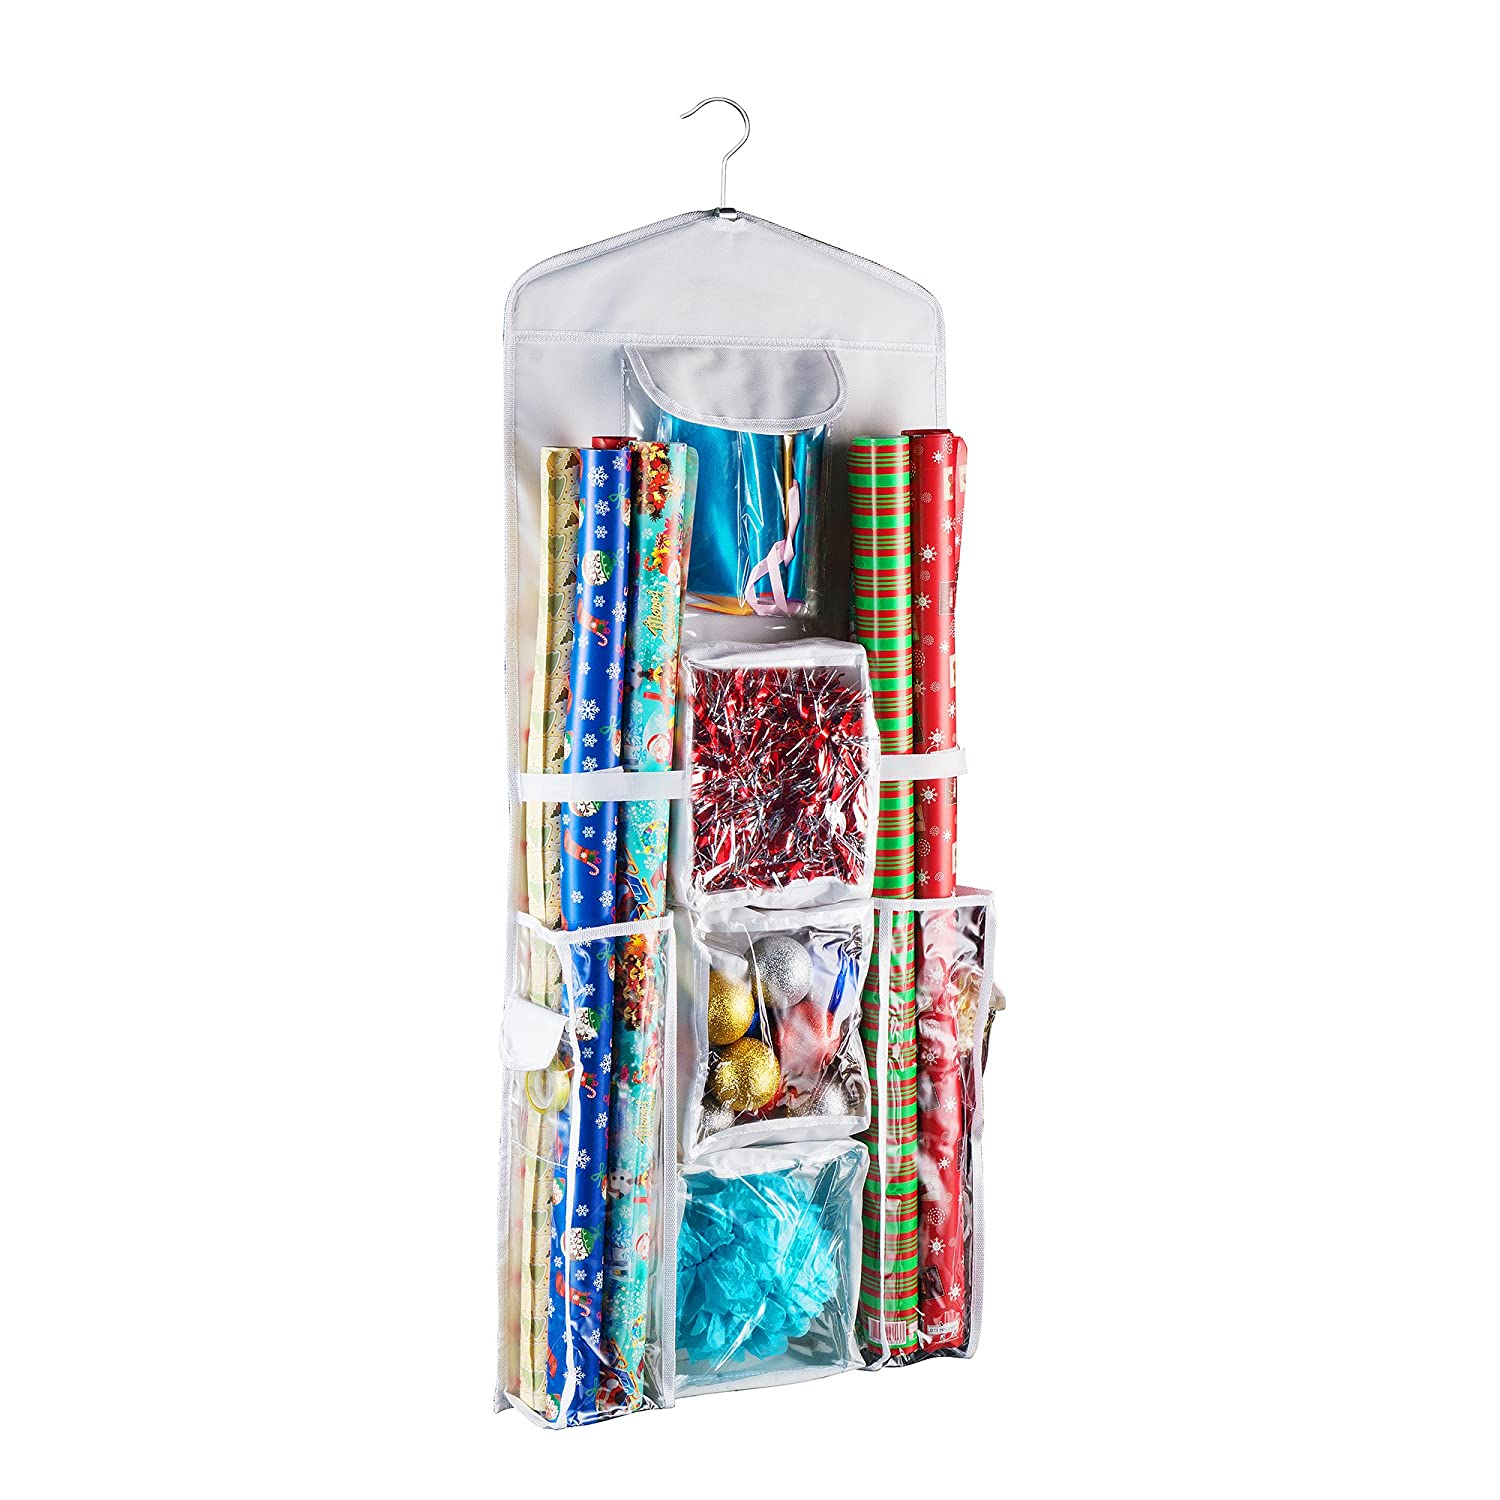 Hanging Wrapping Paper and Gift Bag Organizer Birthday Ribbons Stores it All Bows and More White Trademark Wedding and Holidays Elf Stor 83-DT5152 Double Sided